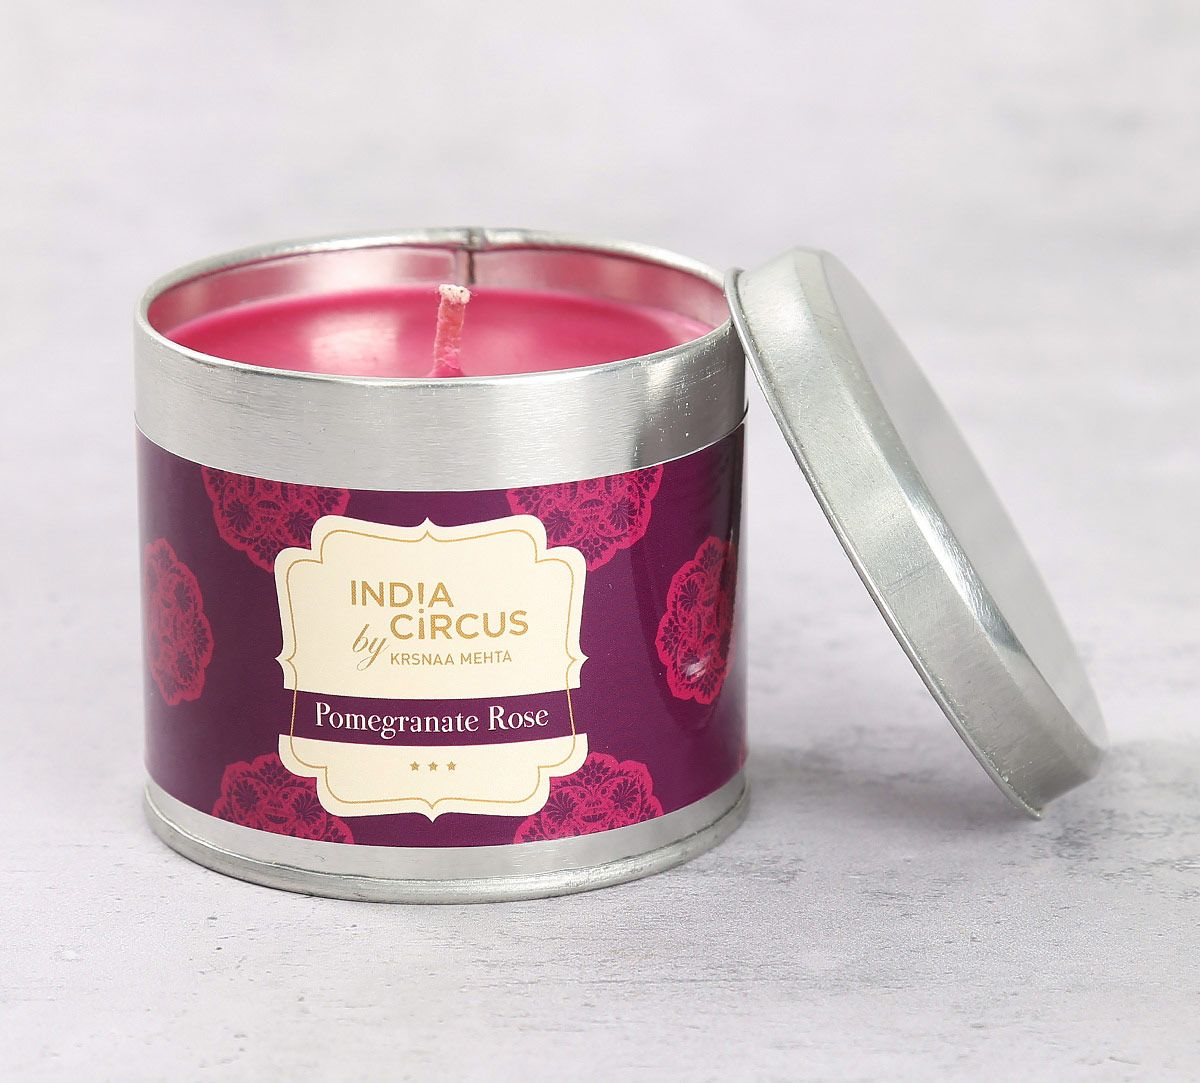 India Circus Pomegranate Rose Tin Candle